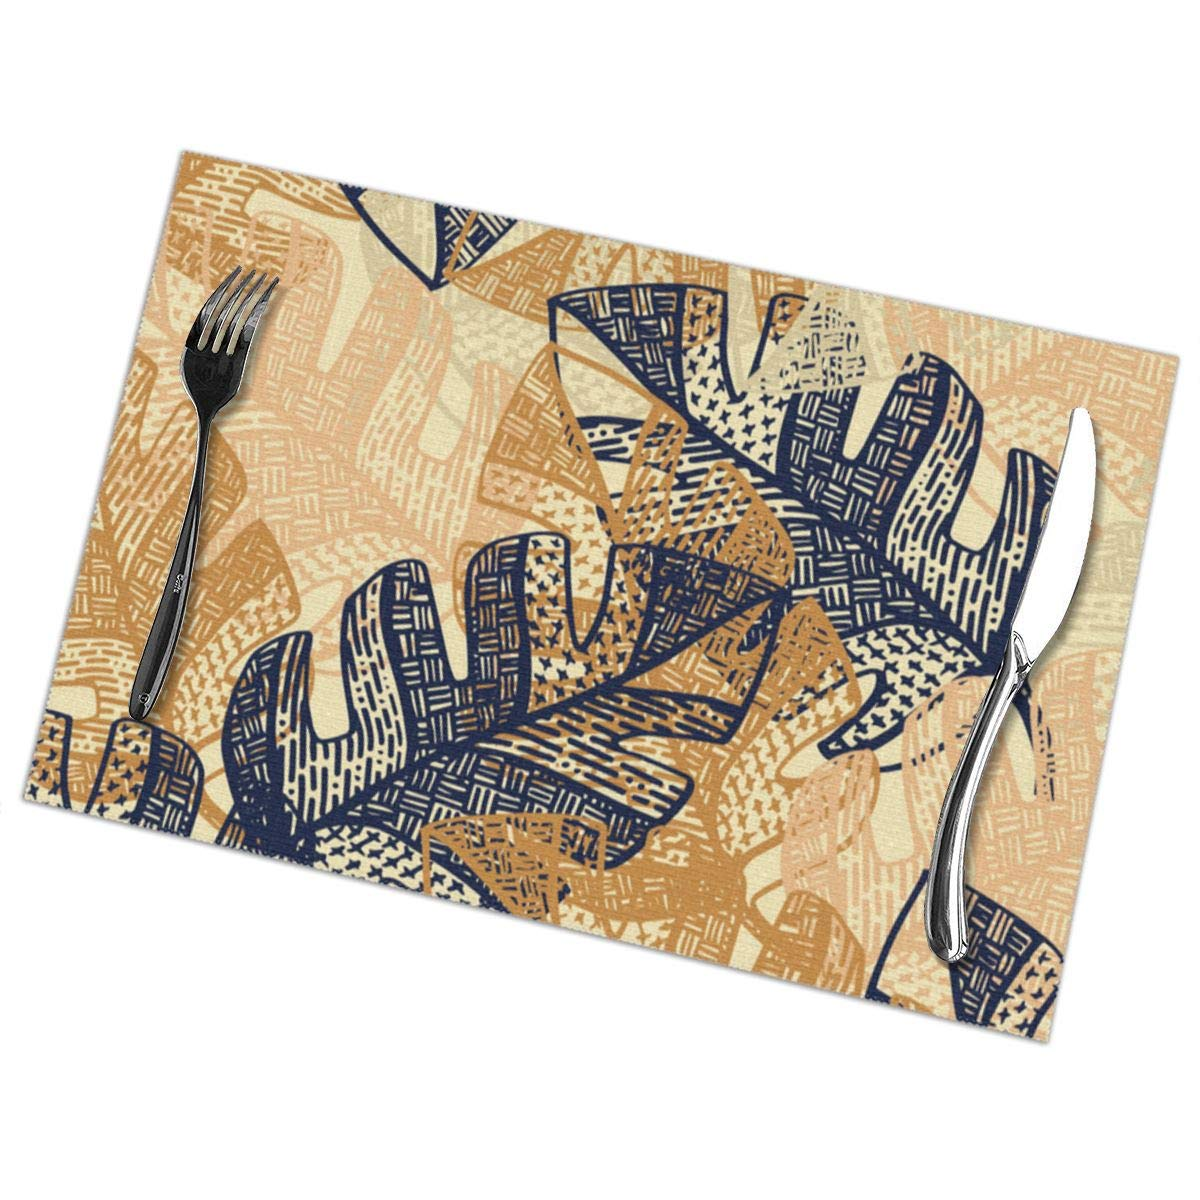 Amazon Com Nonebrand Jungle Tangle Navy Blush Gold Pvc Placemat Weave Design Set Of 6 Heat Resistant Dining Table Place Mats For Kitchen Table 12 X 18 Inches Home Kitchen